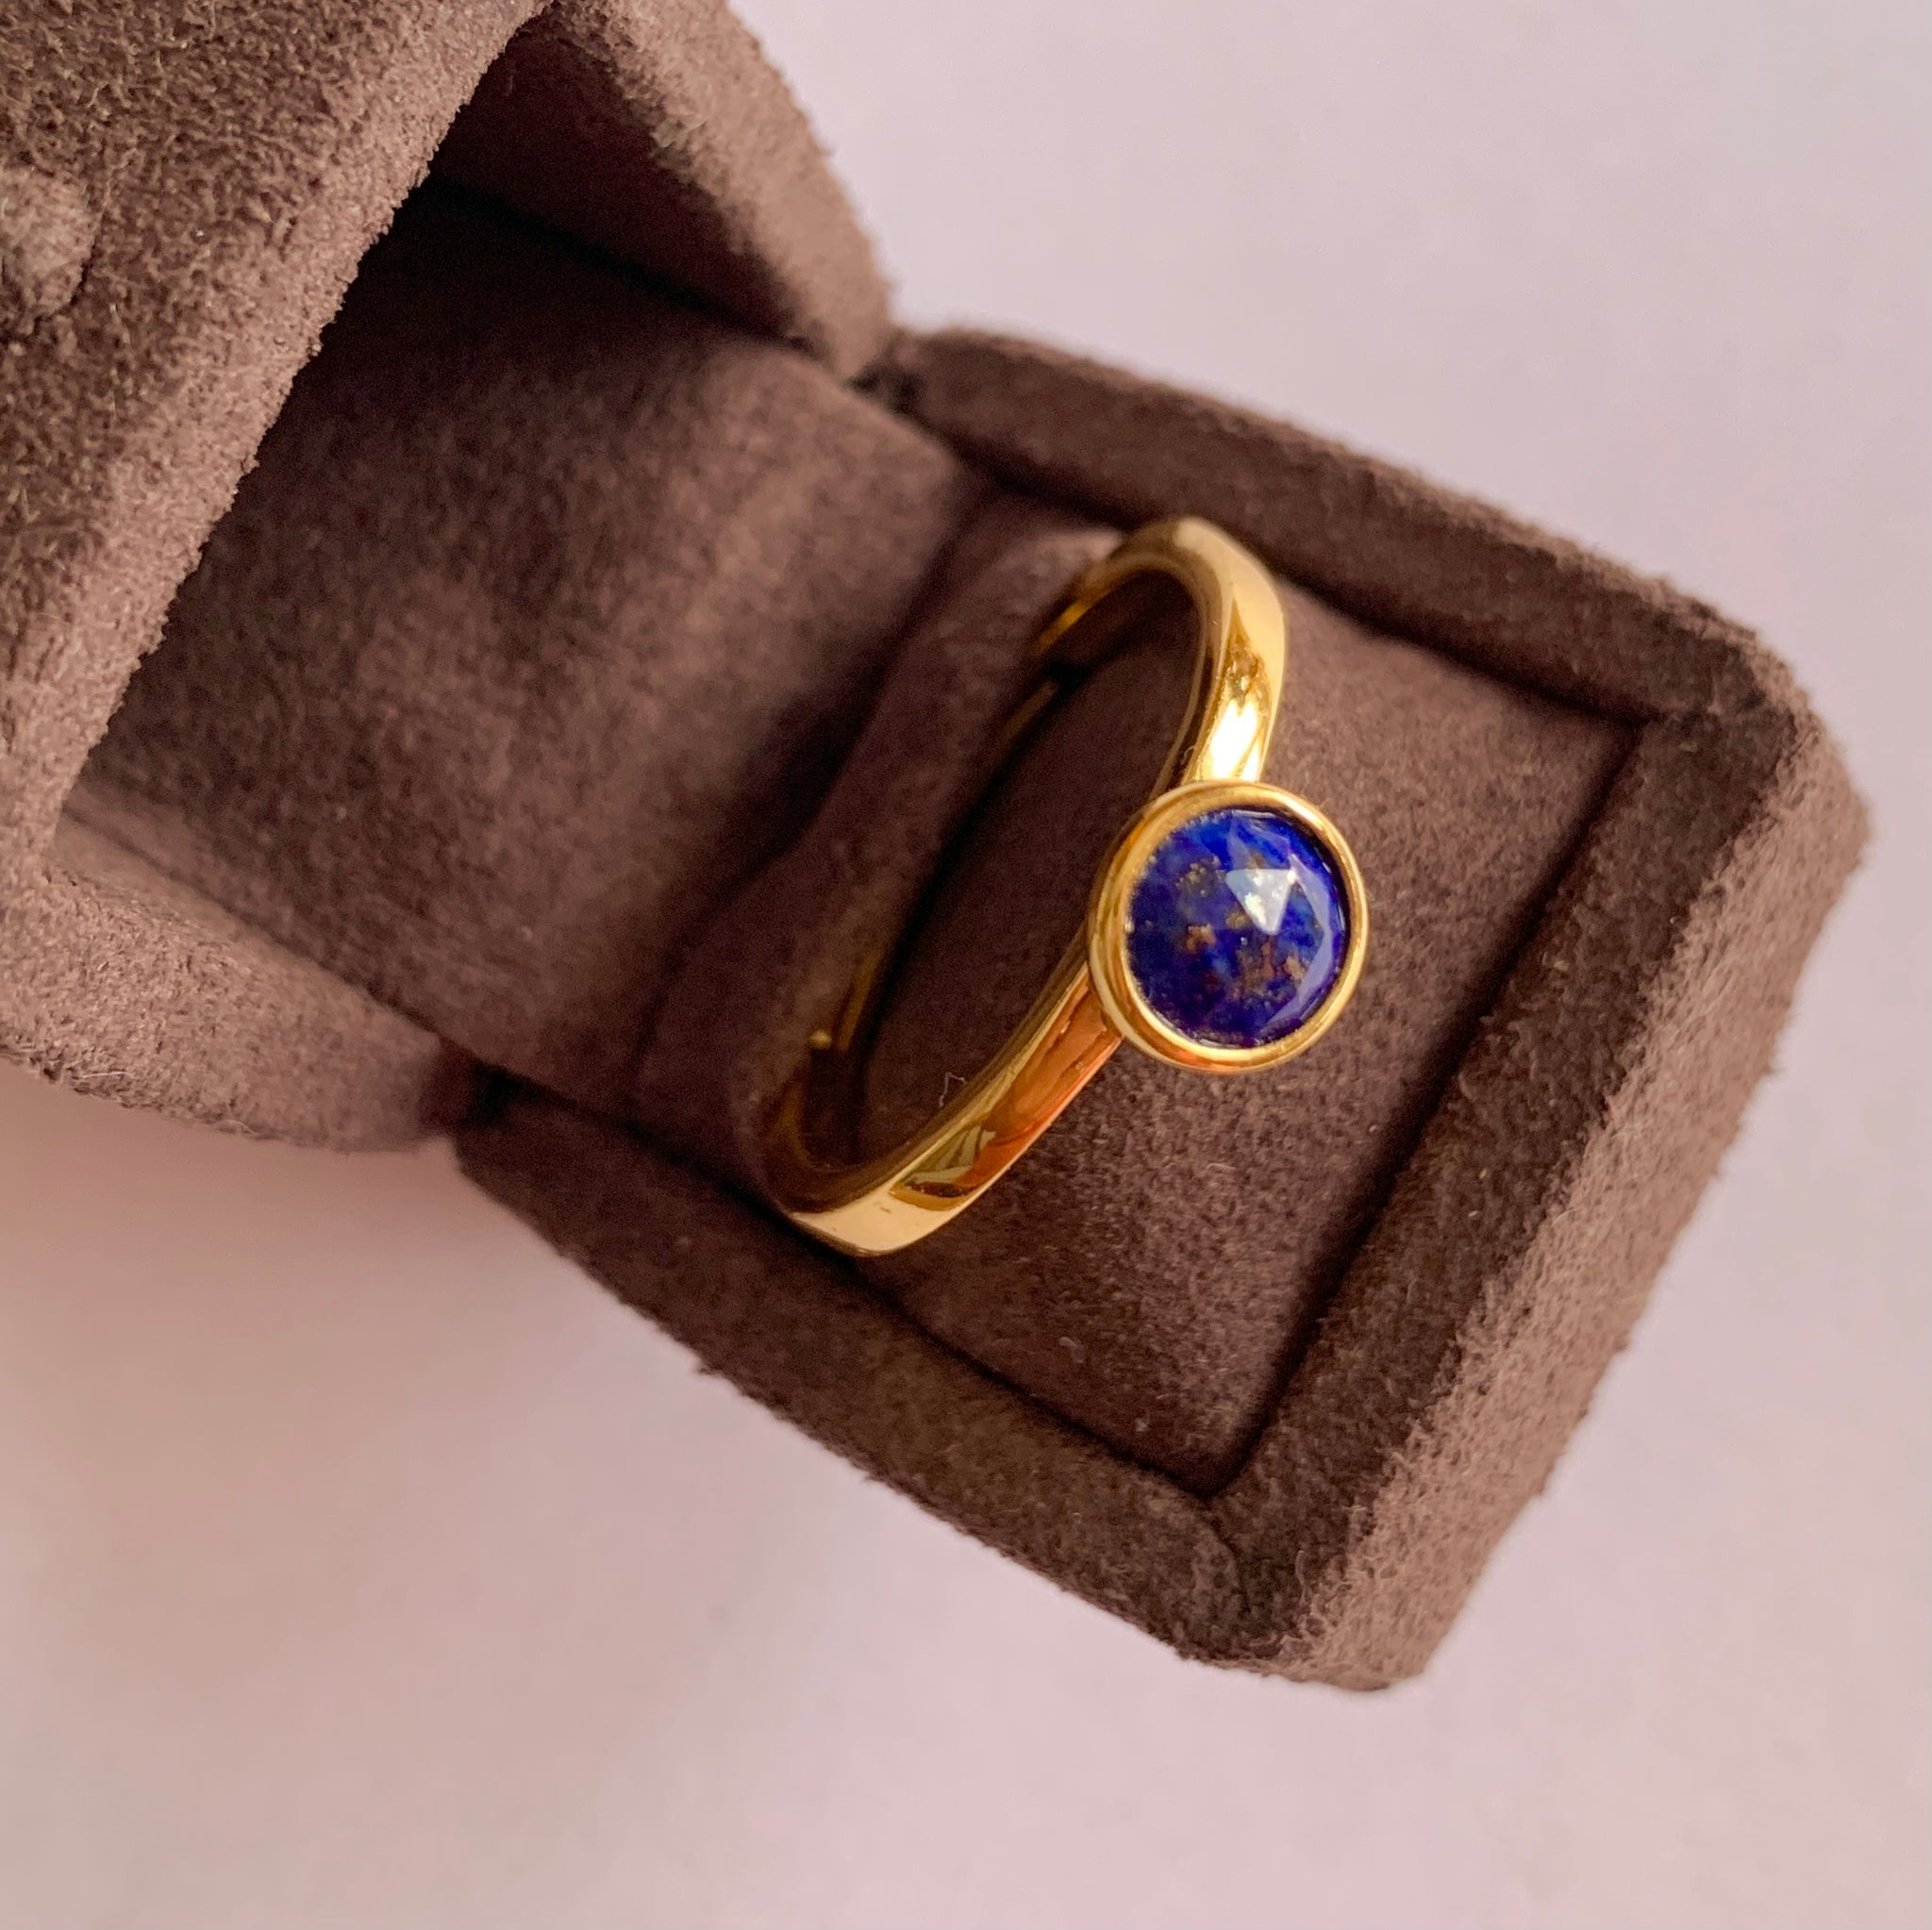 925 Silver Adjustable Ring With Lapis-Lazuli